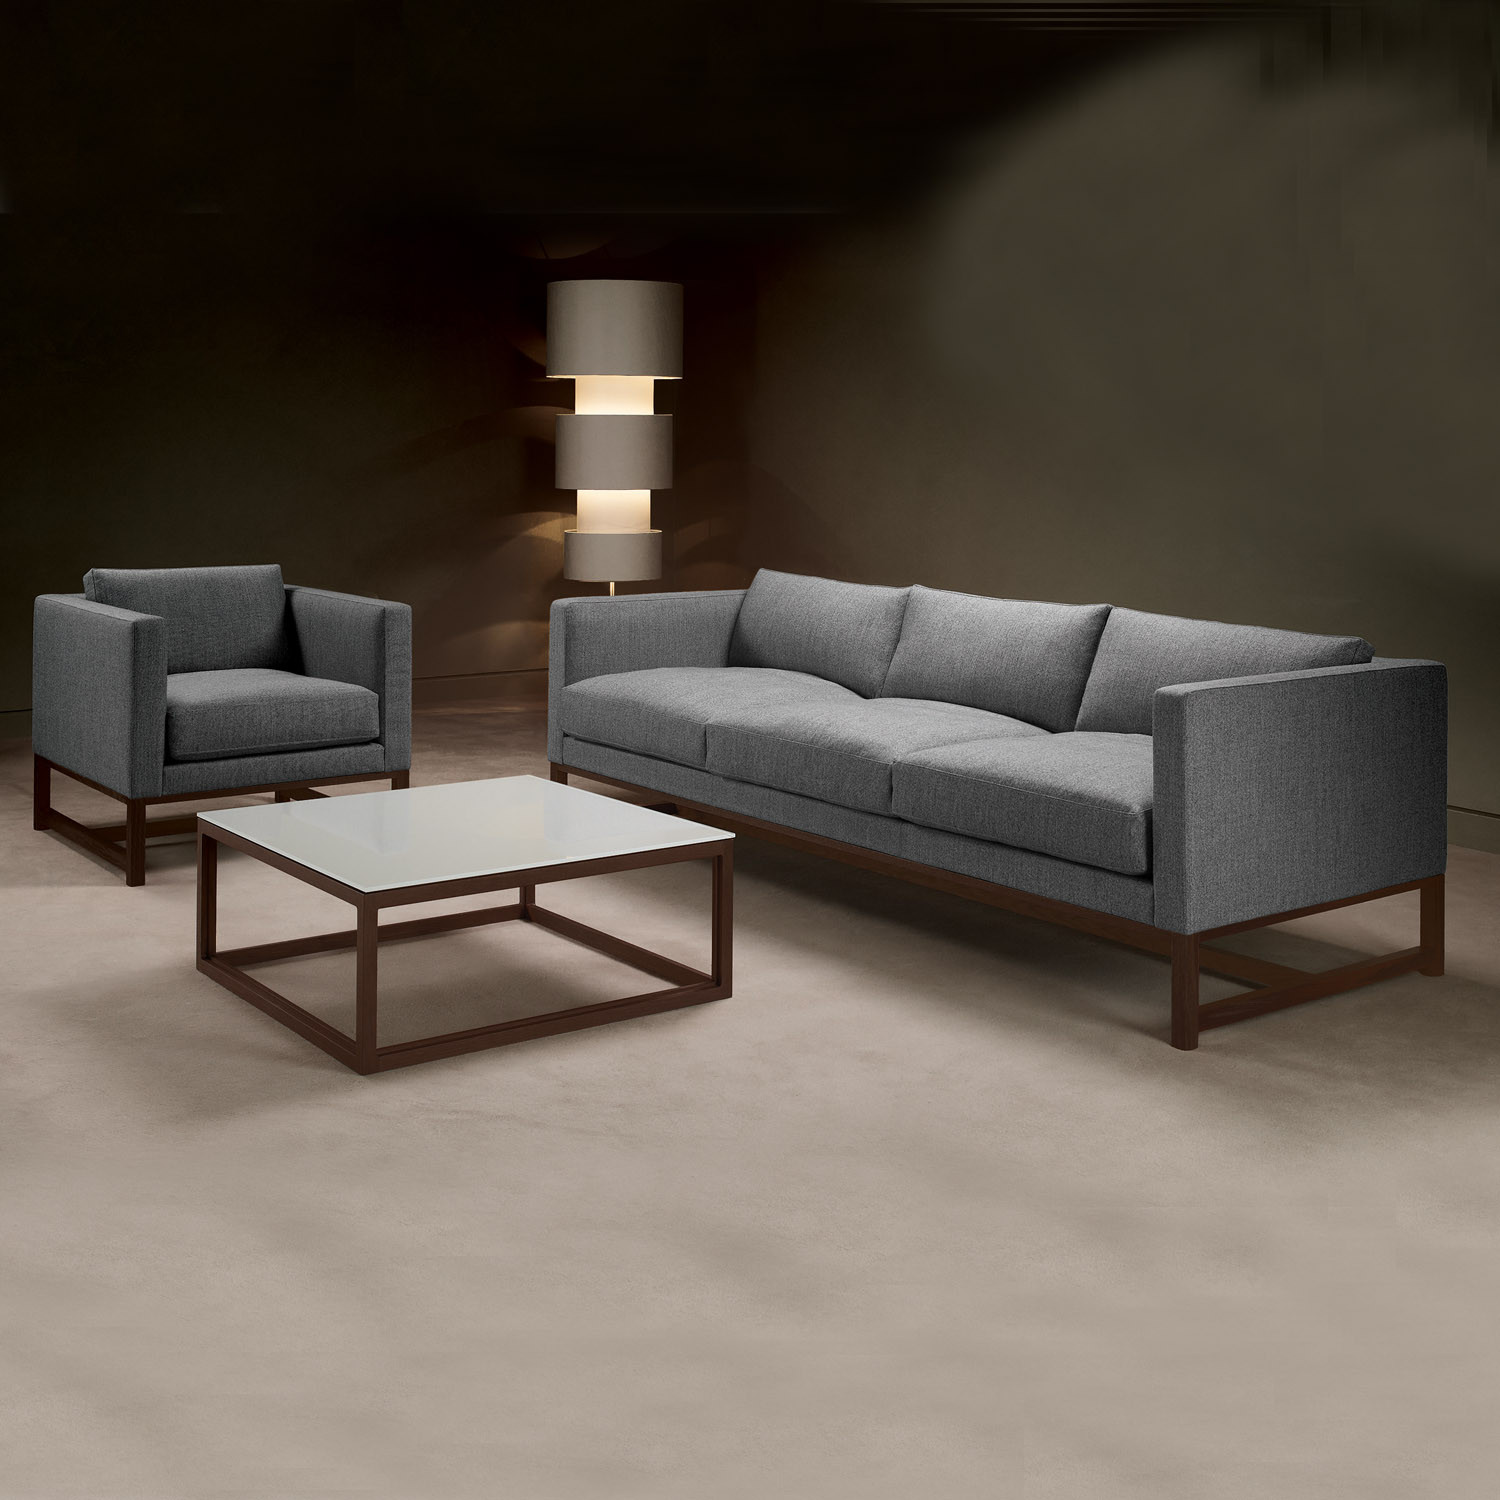 Orten Reception Soft Seating from Lyndon